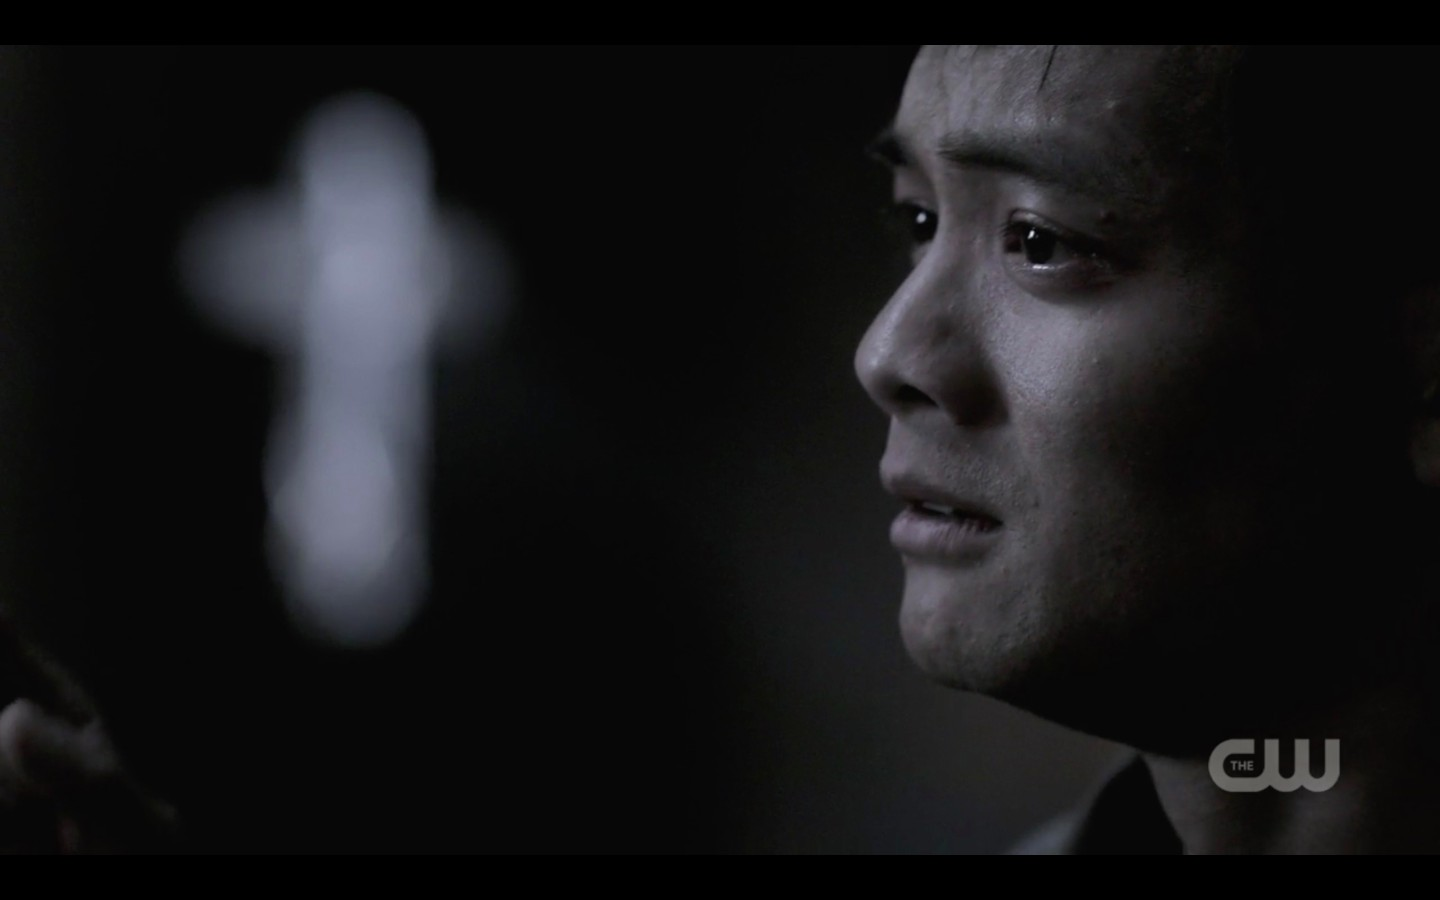 supernatural kevin osric tran death 1320